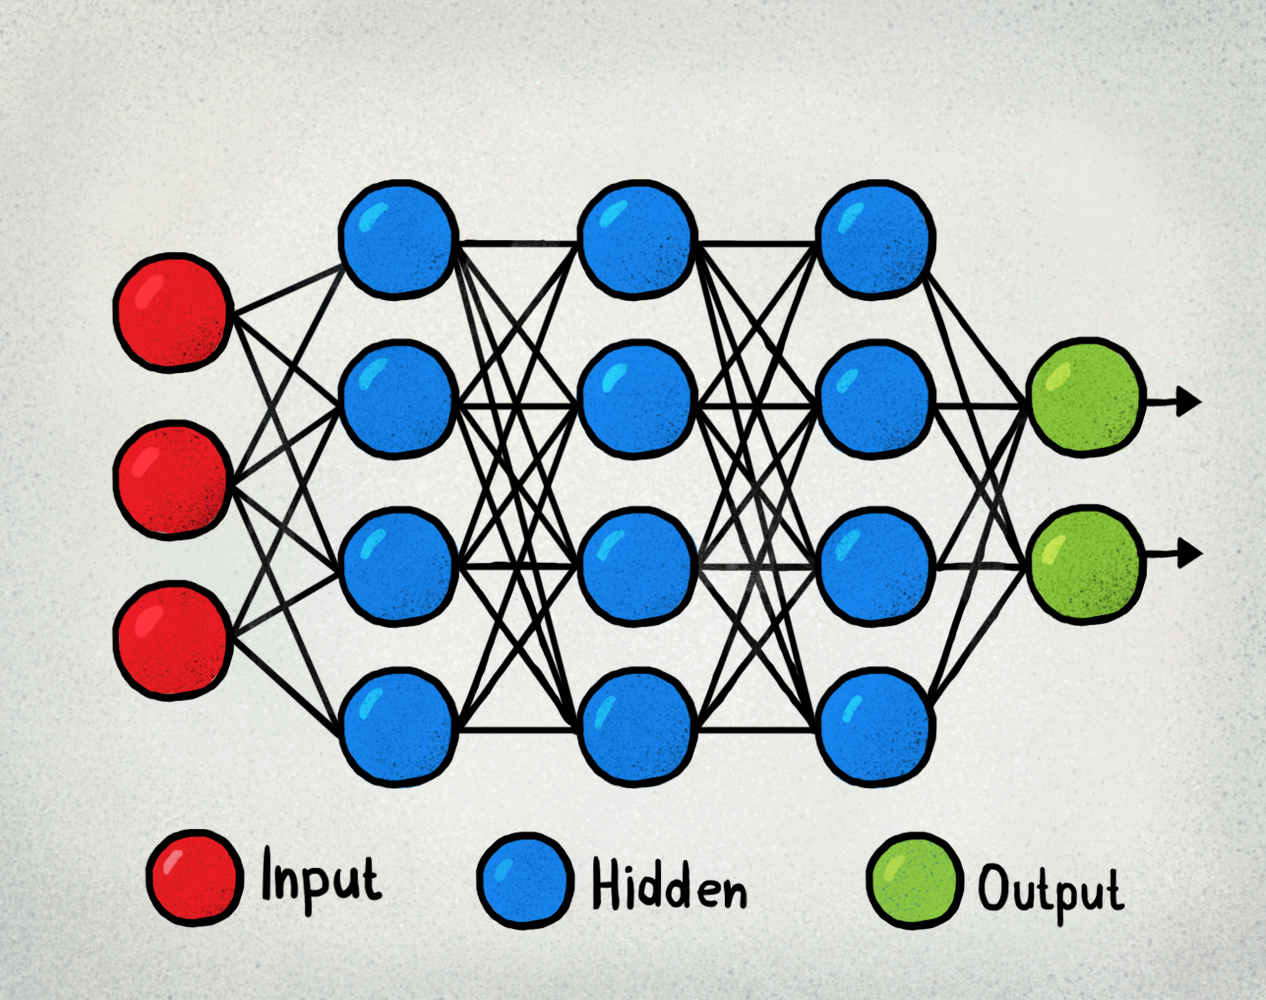 7 types of Artificial Neural Networks for Natural Language